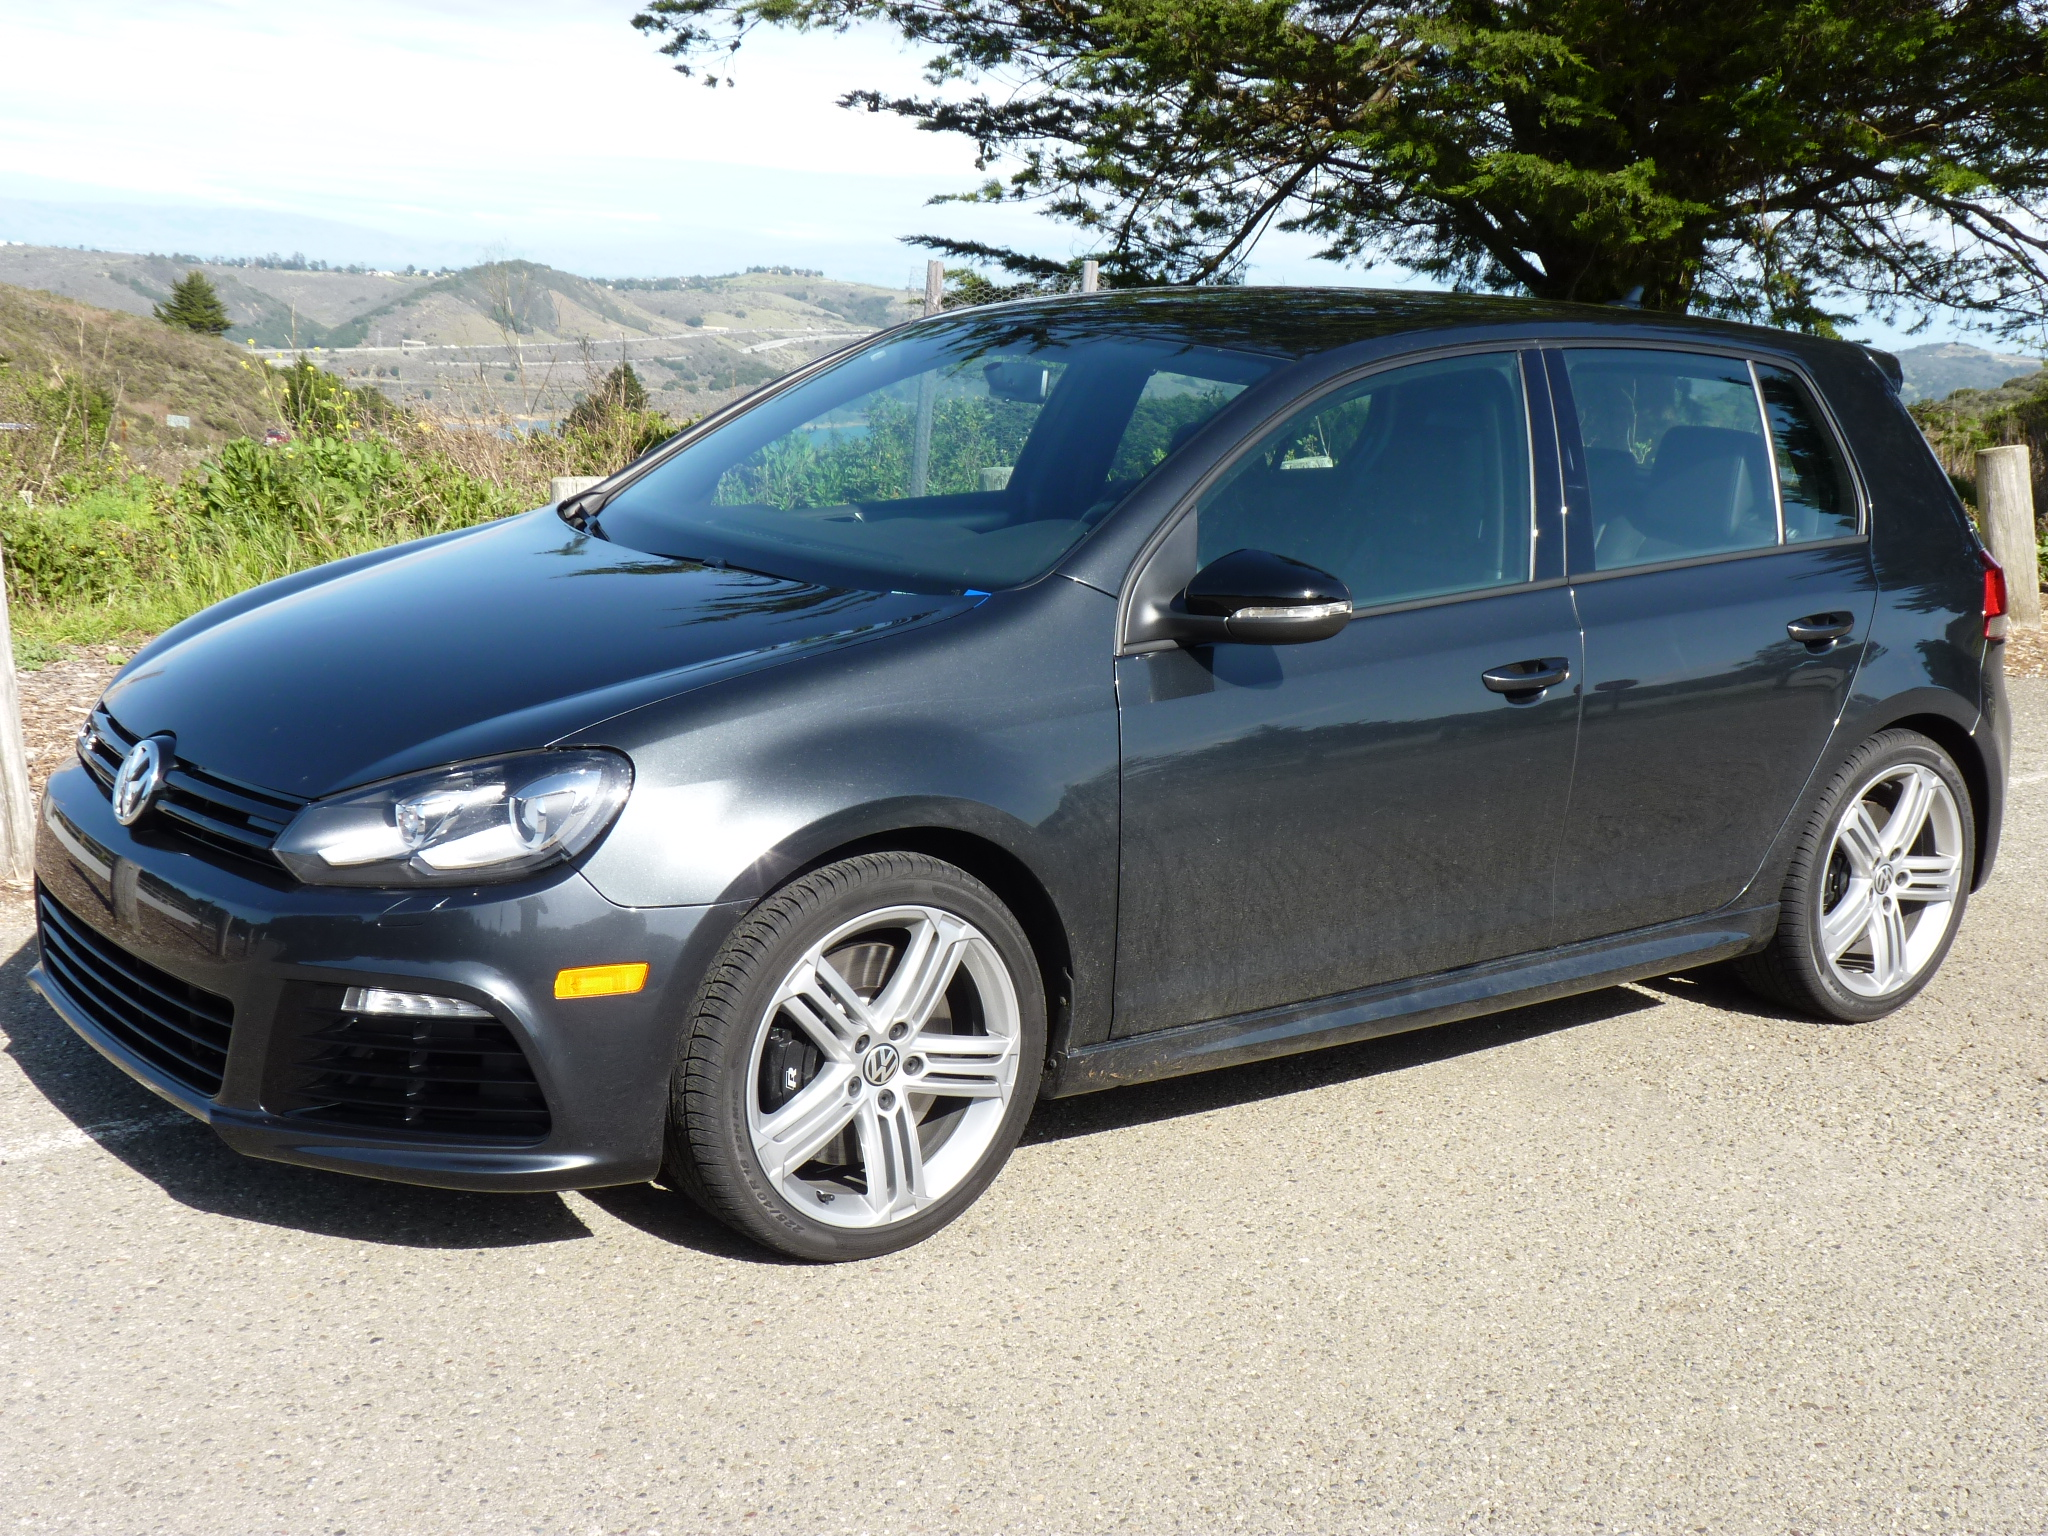 Golf R 0-60 >> 2012 Volkswagen Golf R: First Drive